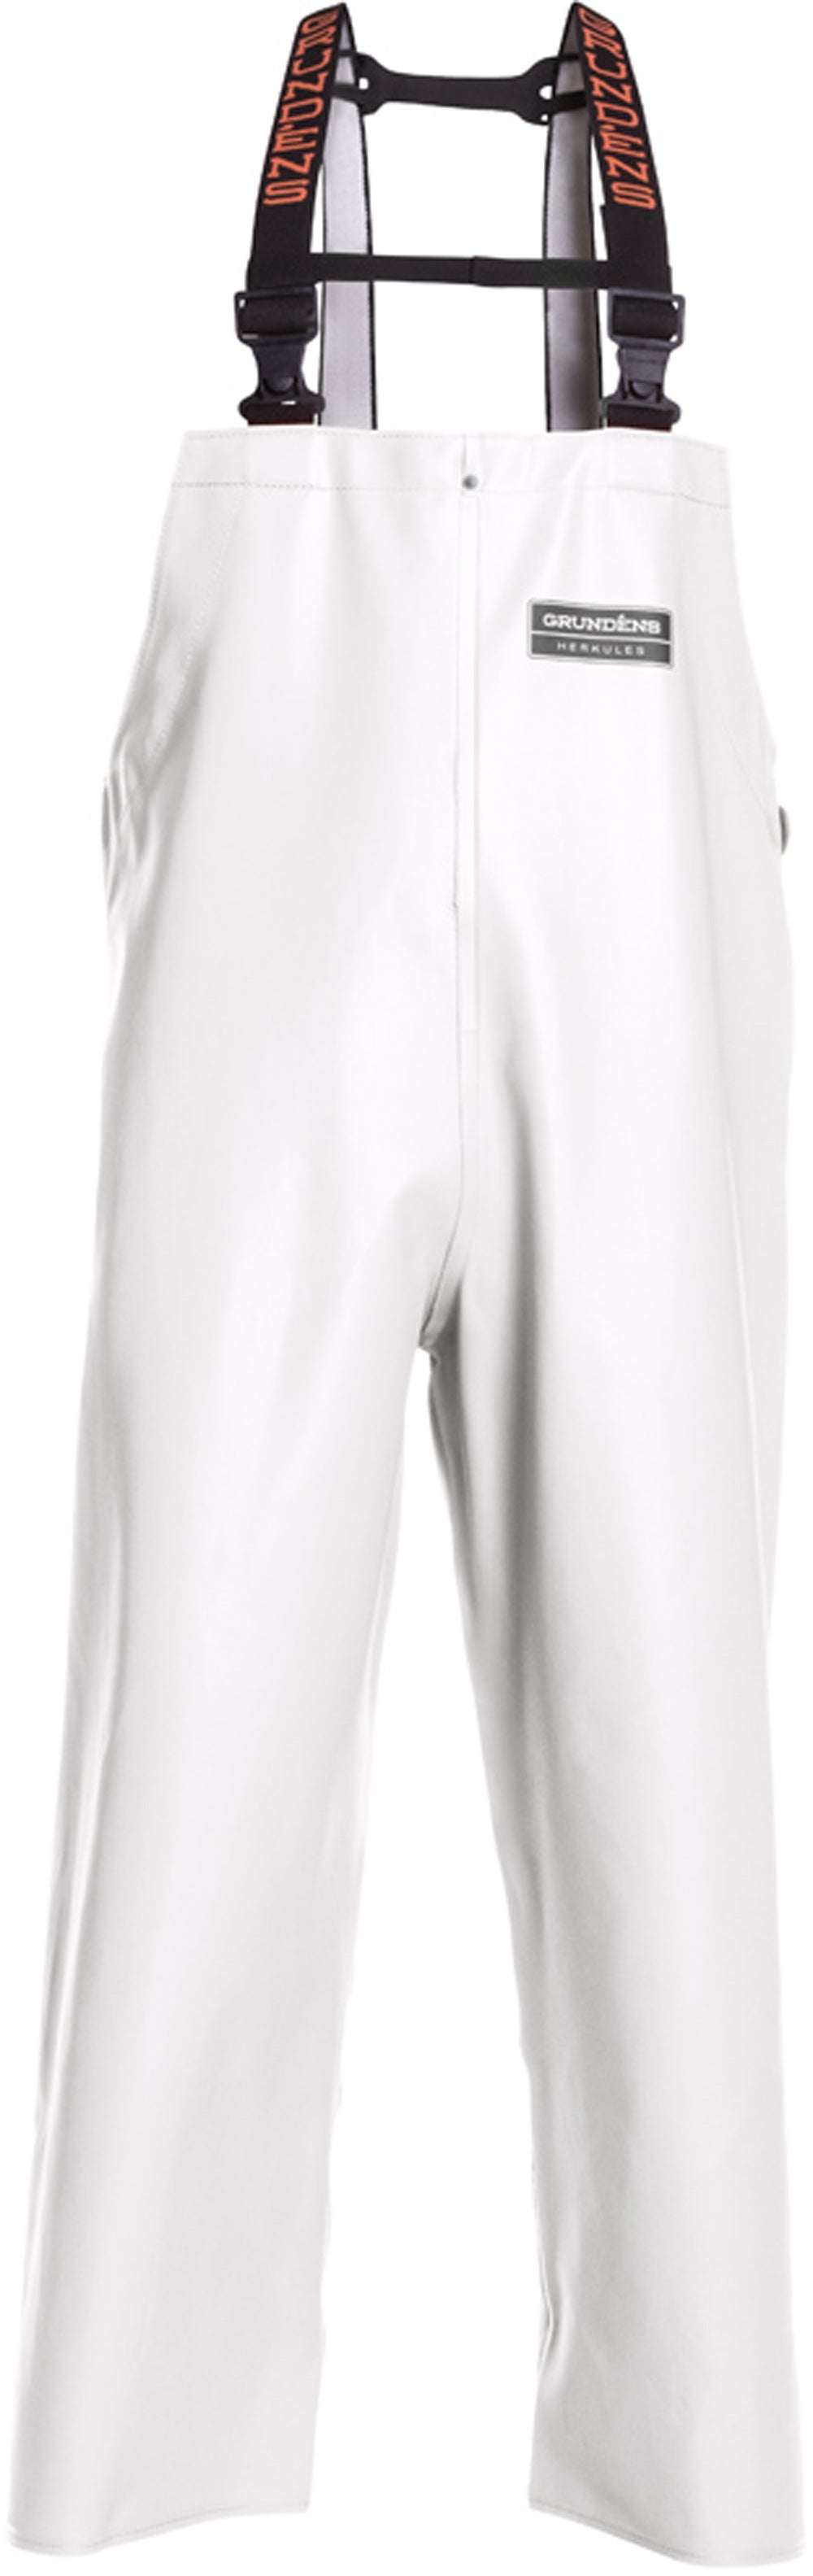 Herkules 16 Bib Pant in White color from the front view